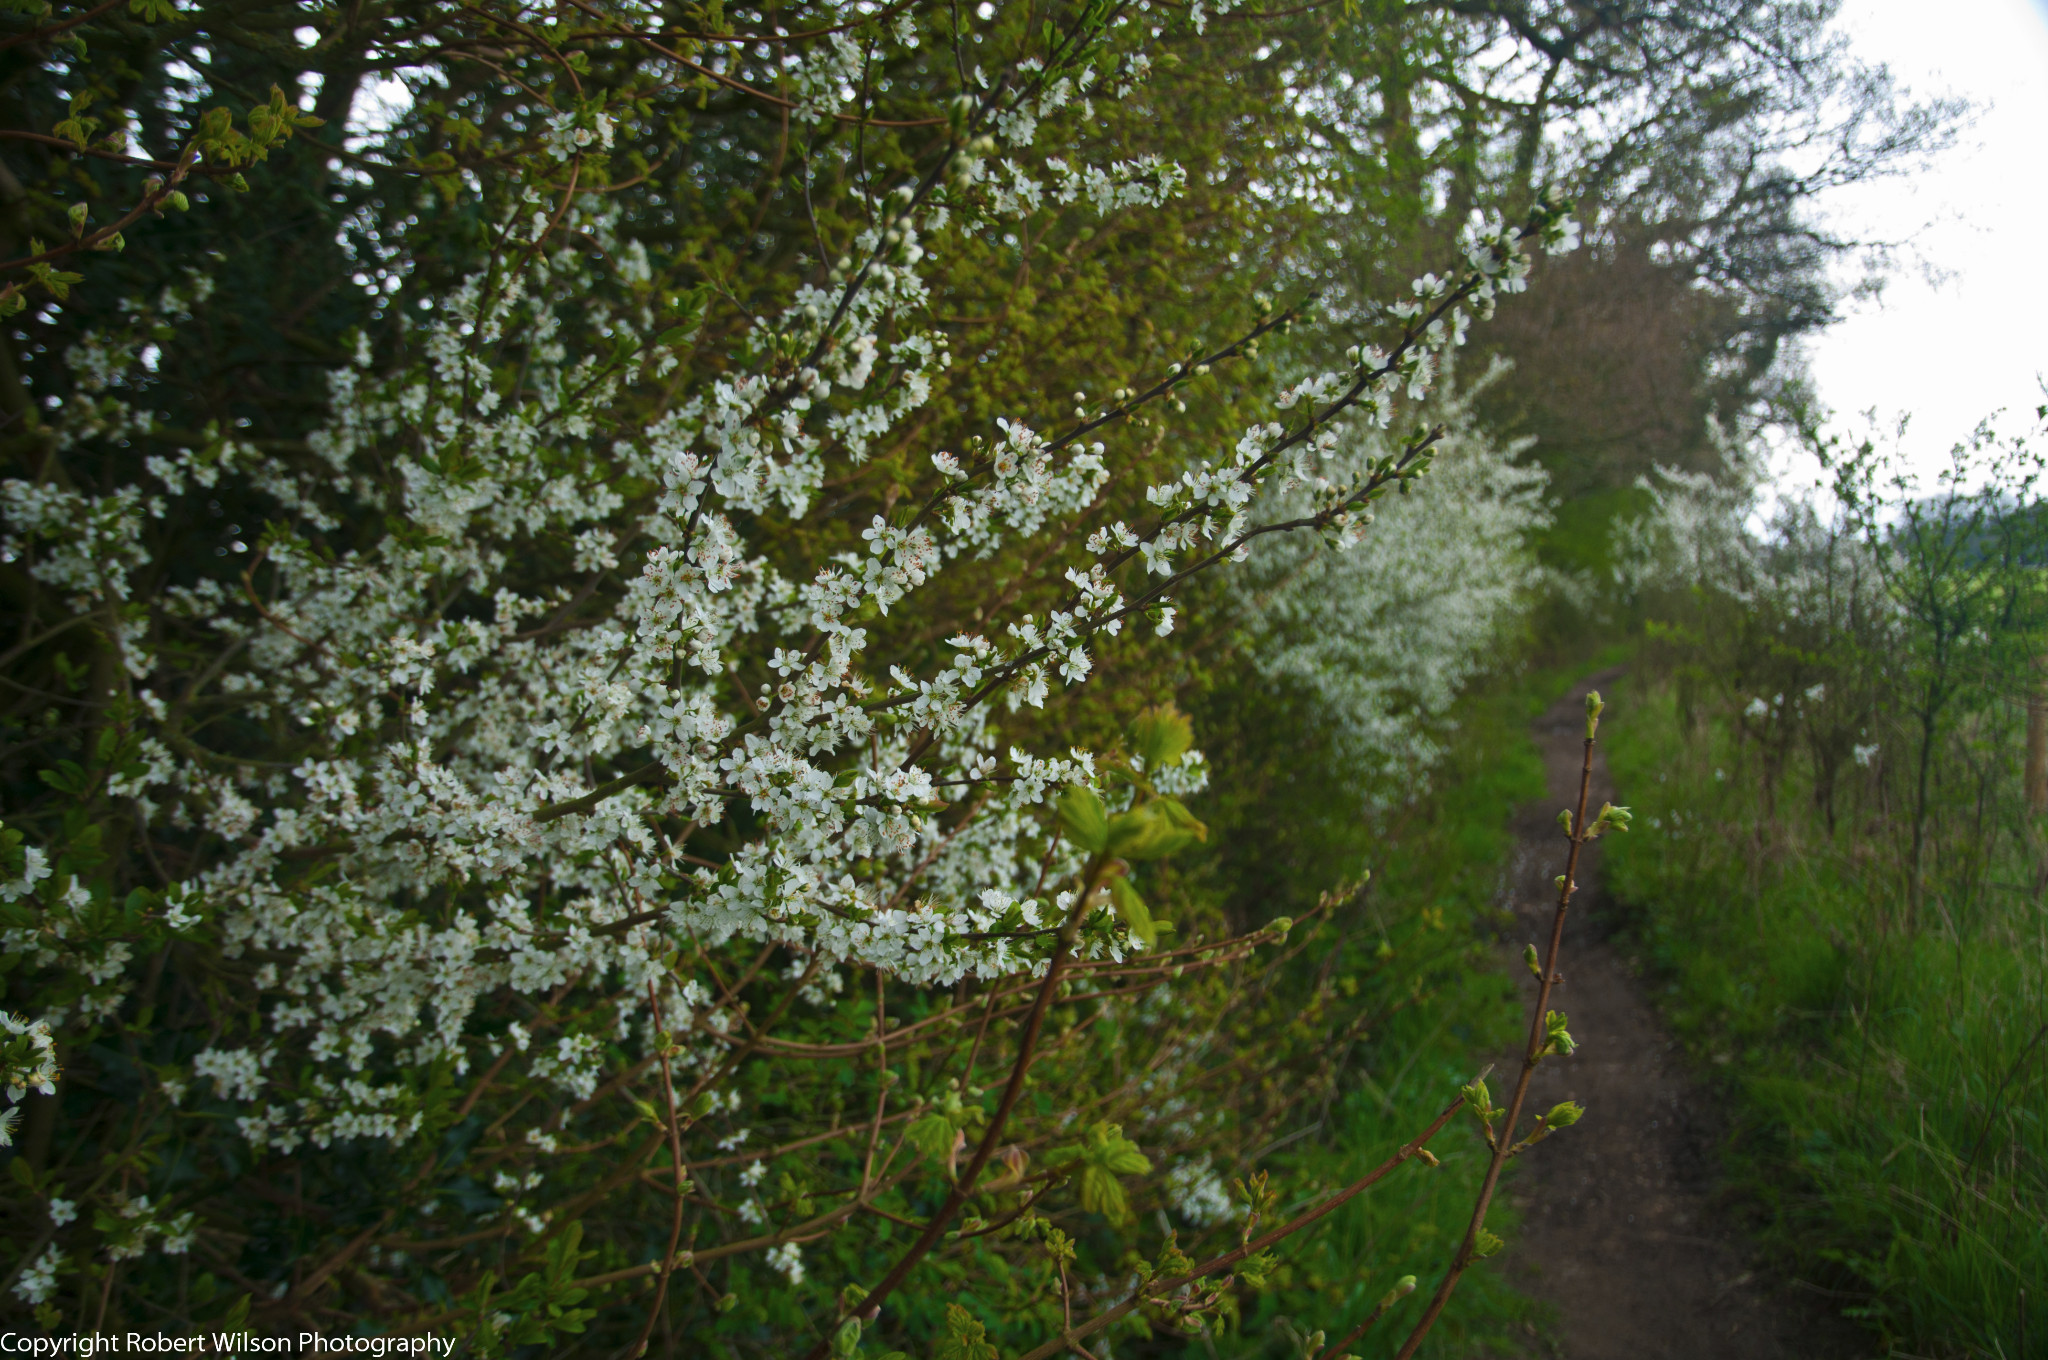 Photo: Hawthorne Blossom along the path leading to Upper Woodend Farm